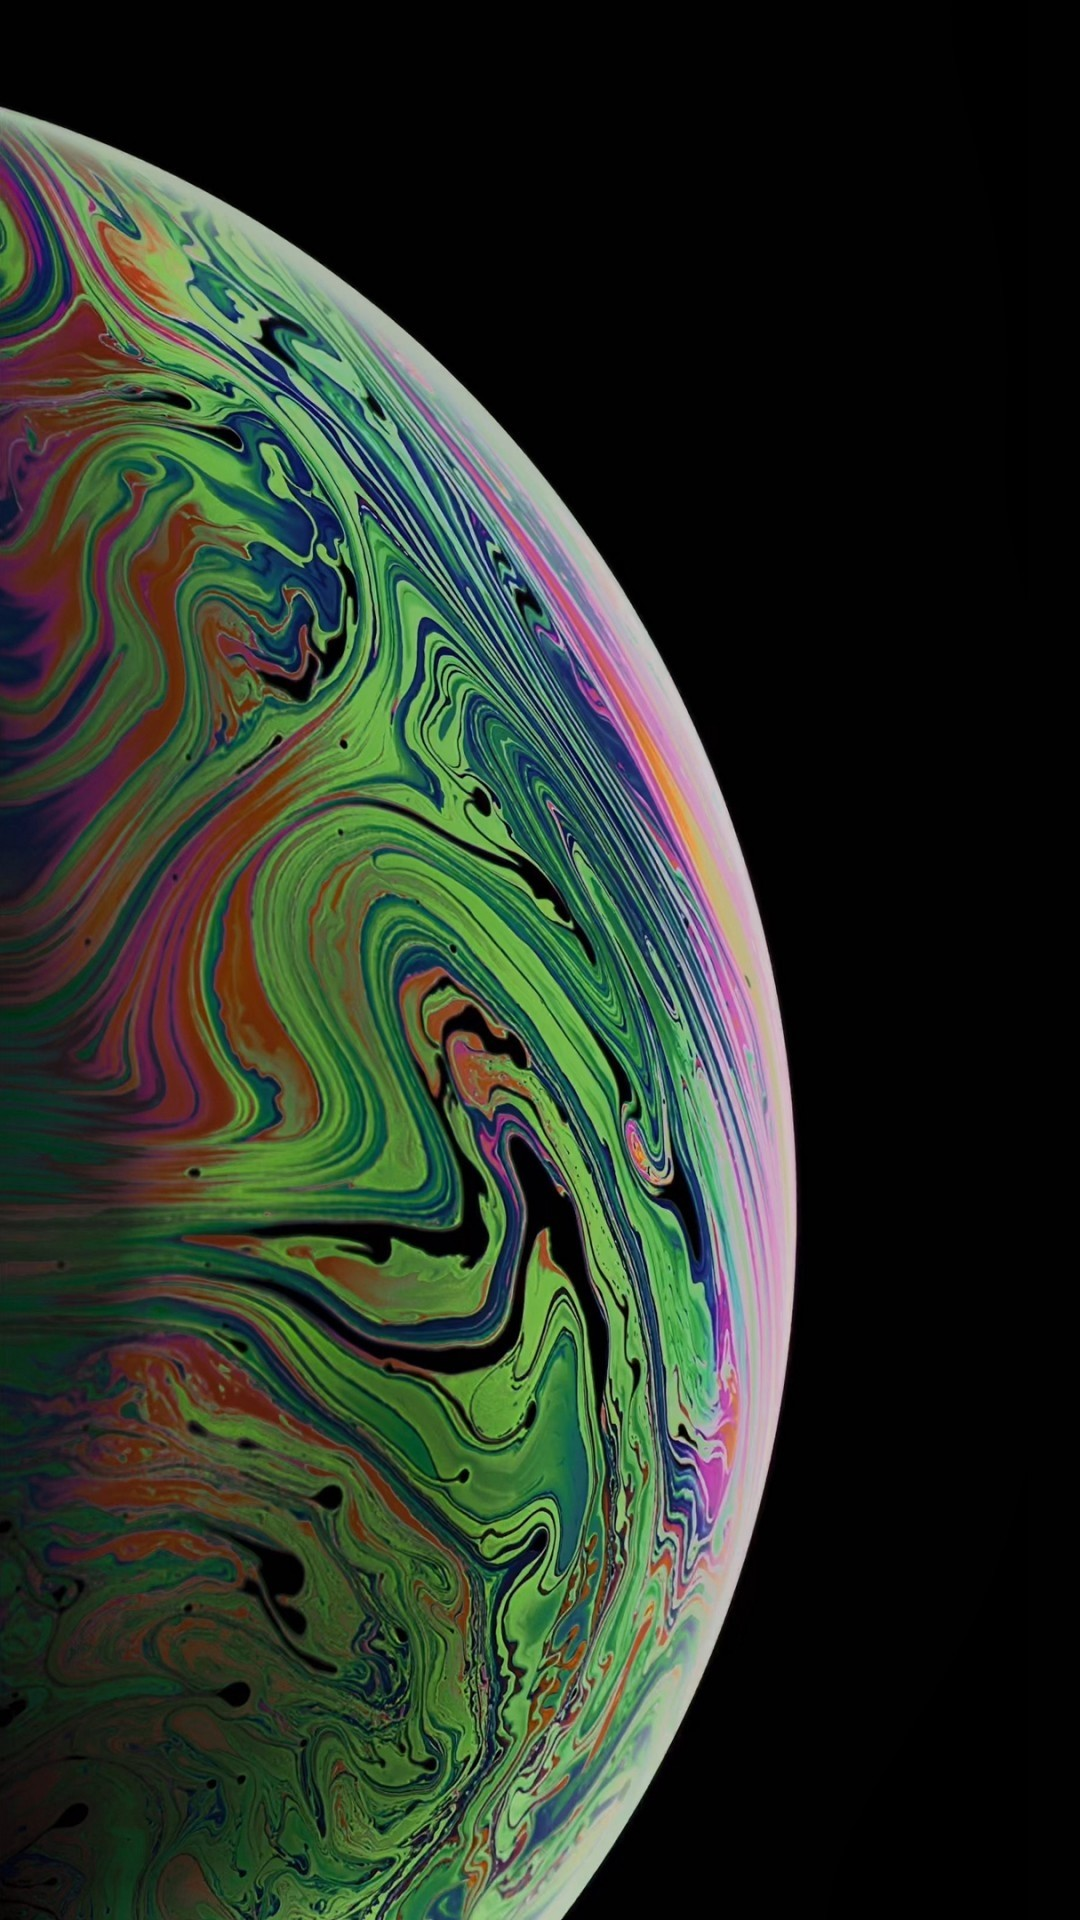 Planet phone background